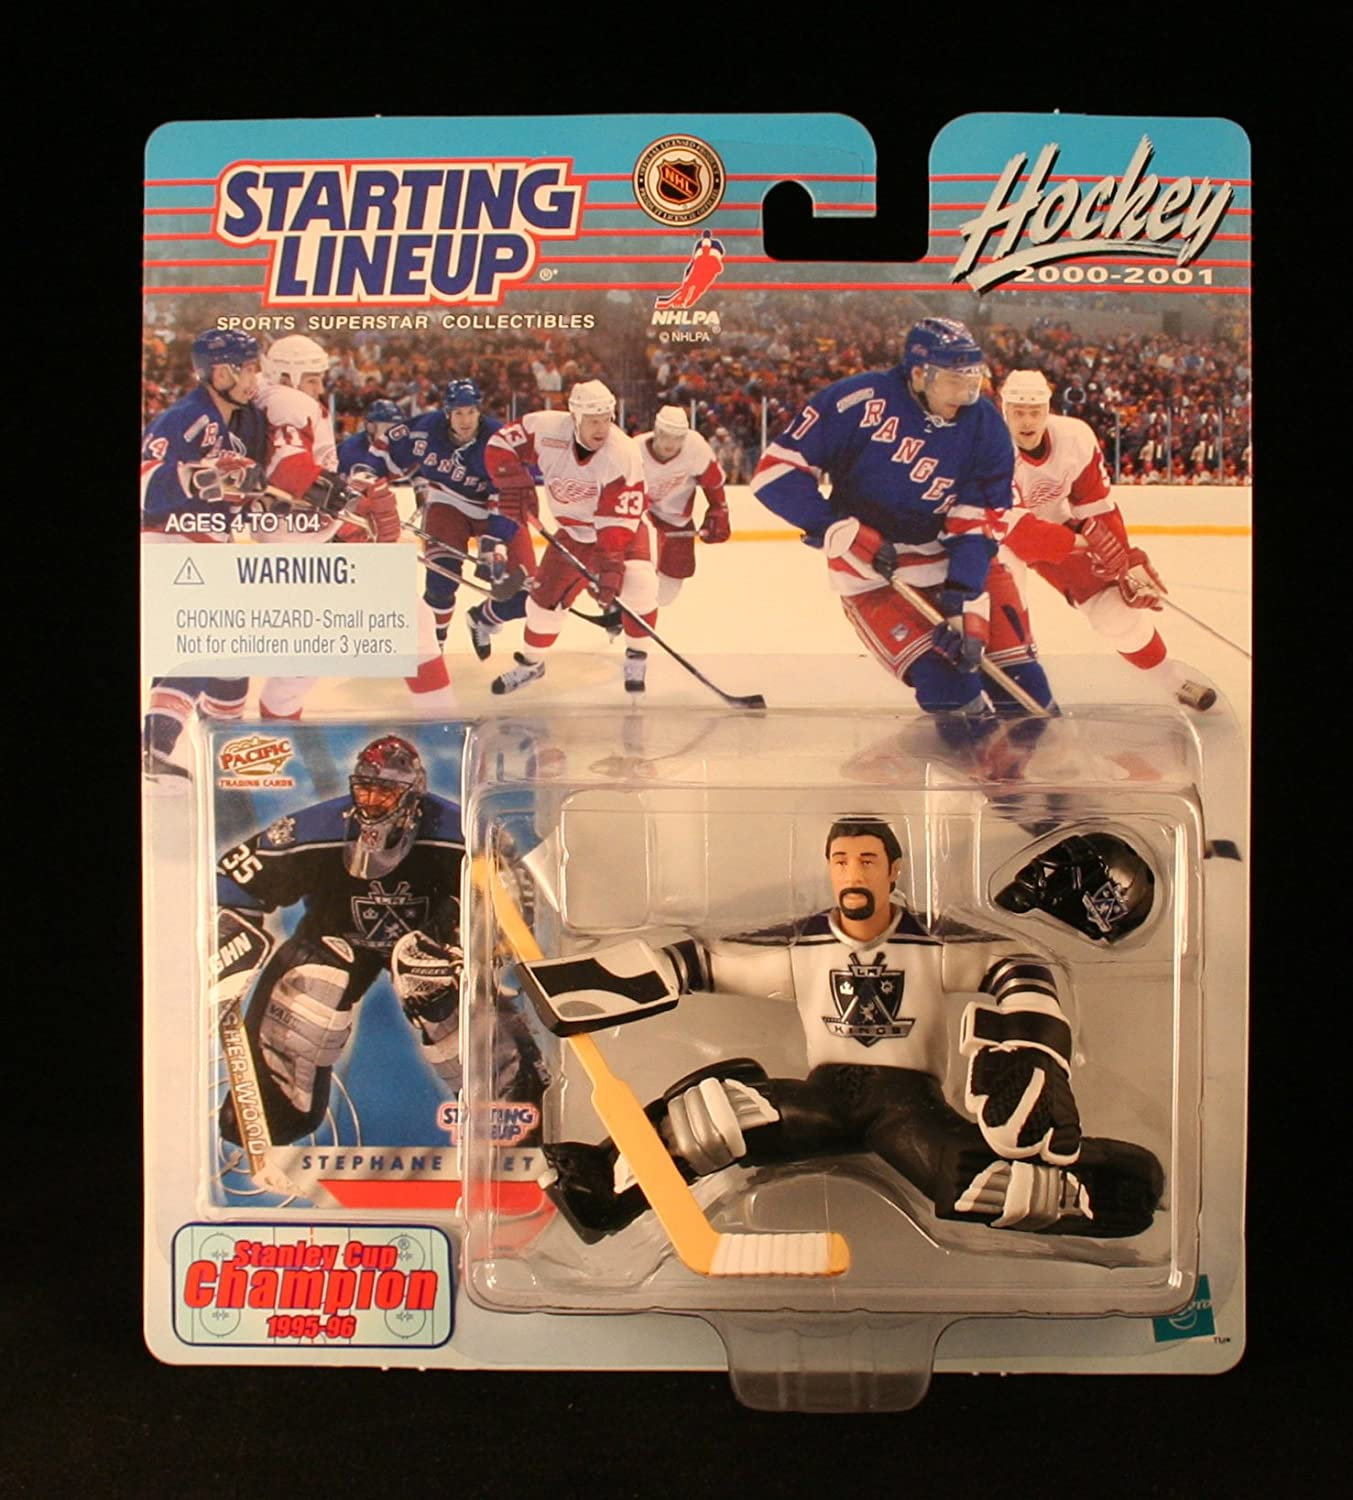 LOS ANGELES KINGS 2000-2001 NHL Action Figure /& Exclusive Collector Trading Card Hasbro 73023 Starting Lineup STEPHANE FISET